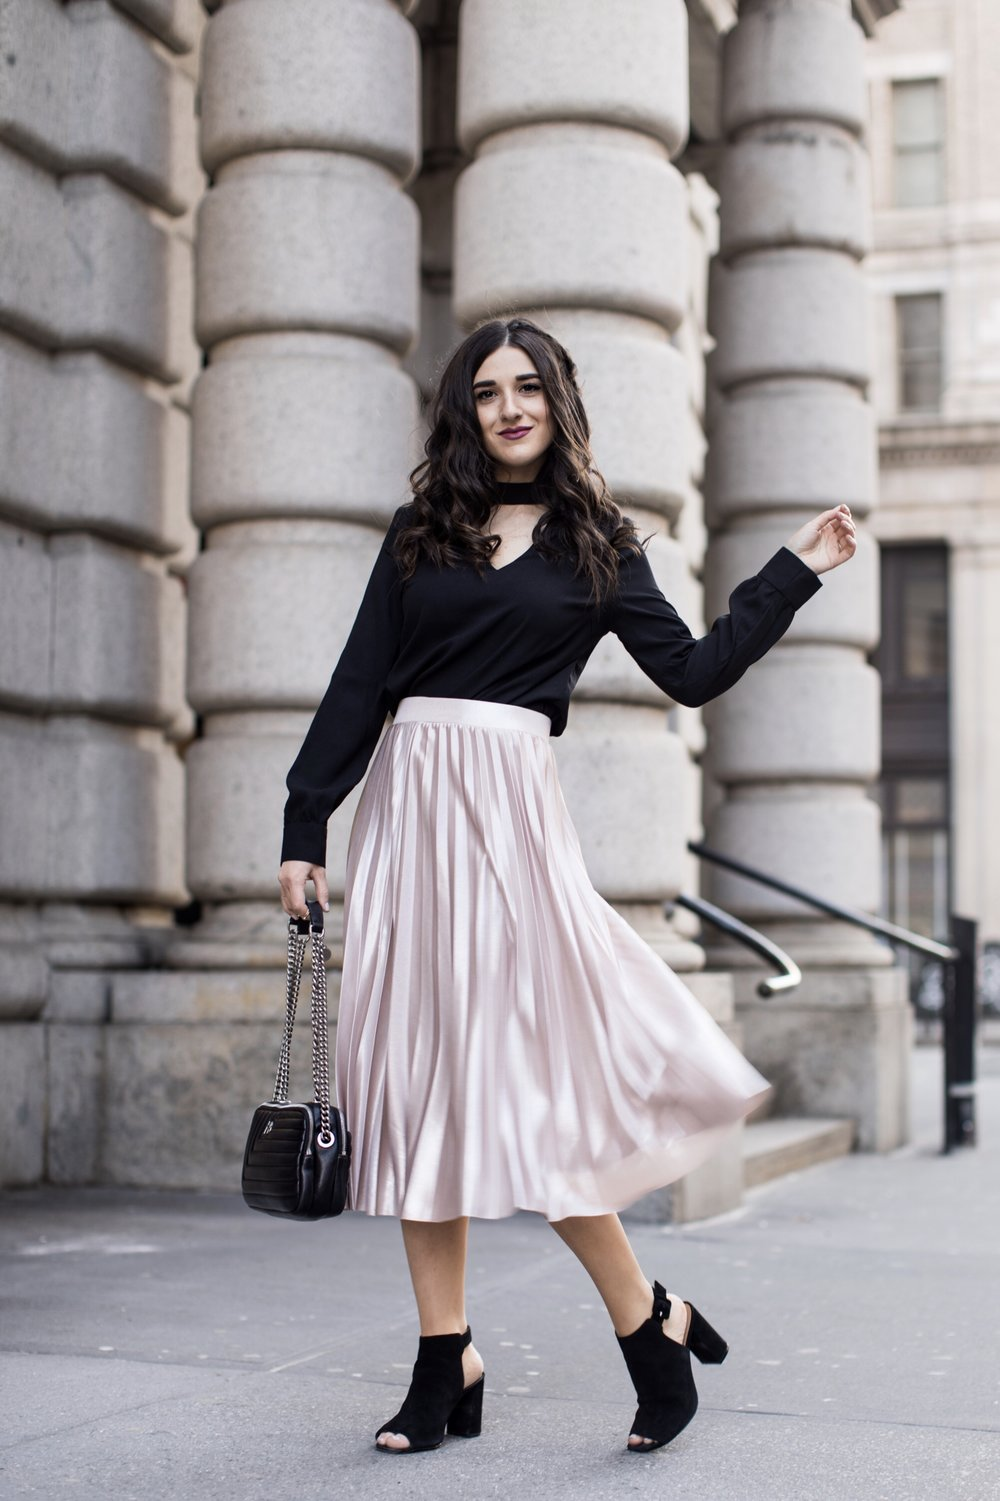 Metallic Midi Skirt Black Cutout Top How I Pack In A Carry On Esther Santer Fashion Blog NYC Street Style Blogger Outfit OOTD Trendy Feminine Girly Spring Hairstyle Waves Travel Tips Honeymoon Photshoot Pose Wearing Shop Peep Toe Booties Henri  Bendel.jpg